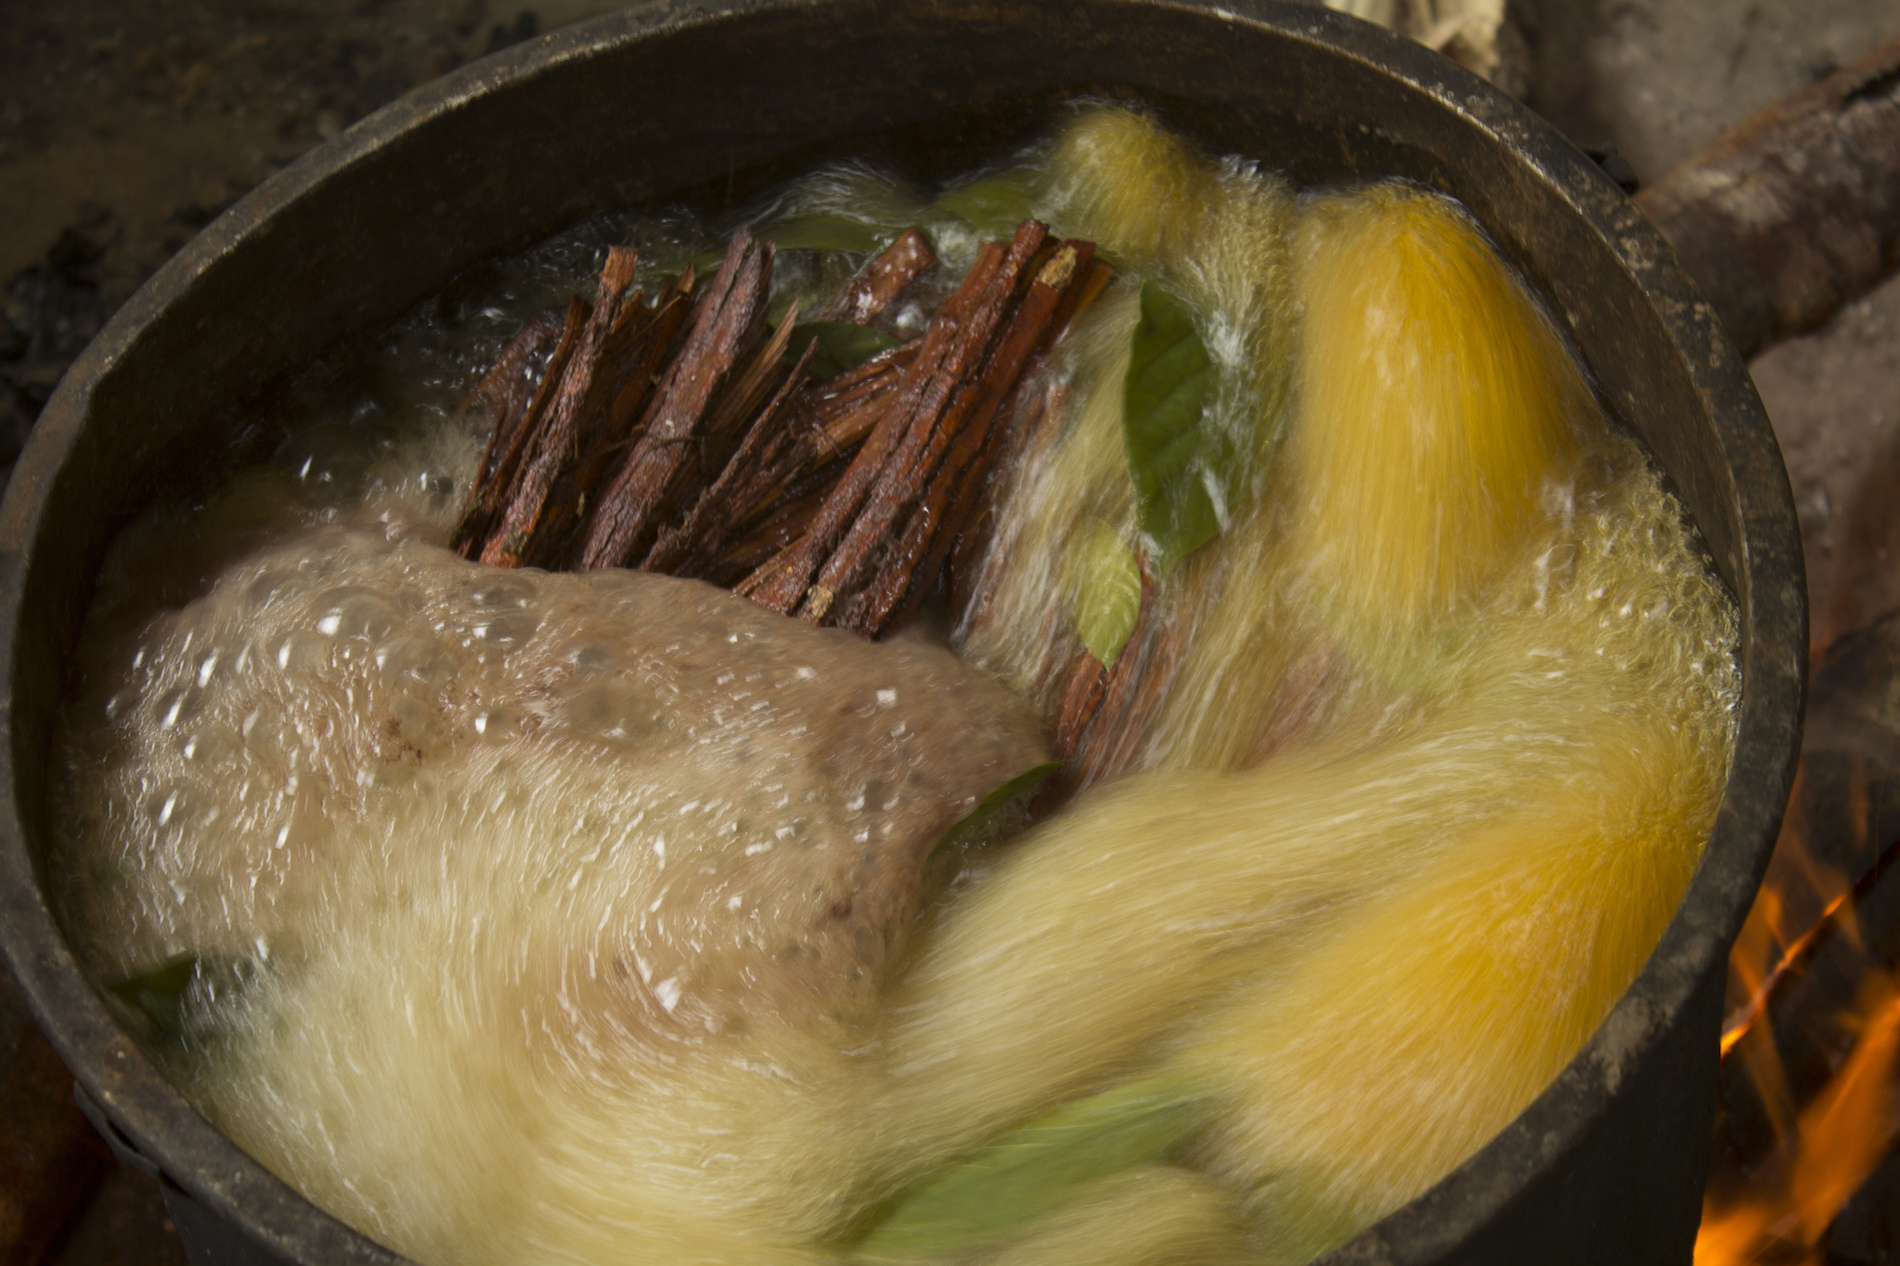 VICE Doc Explores Hallucinogenic Tea That Makes You Poop Out